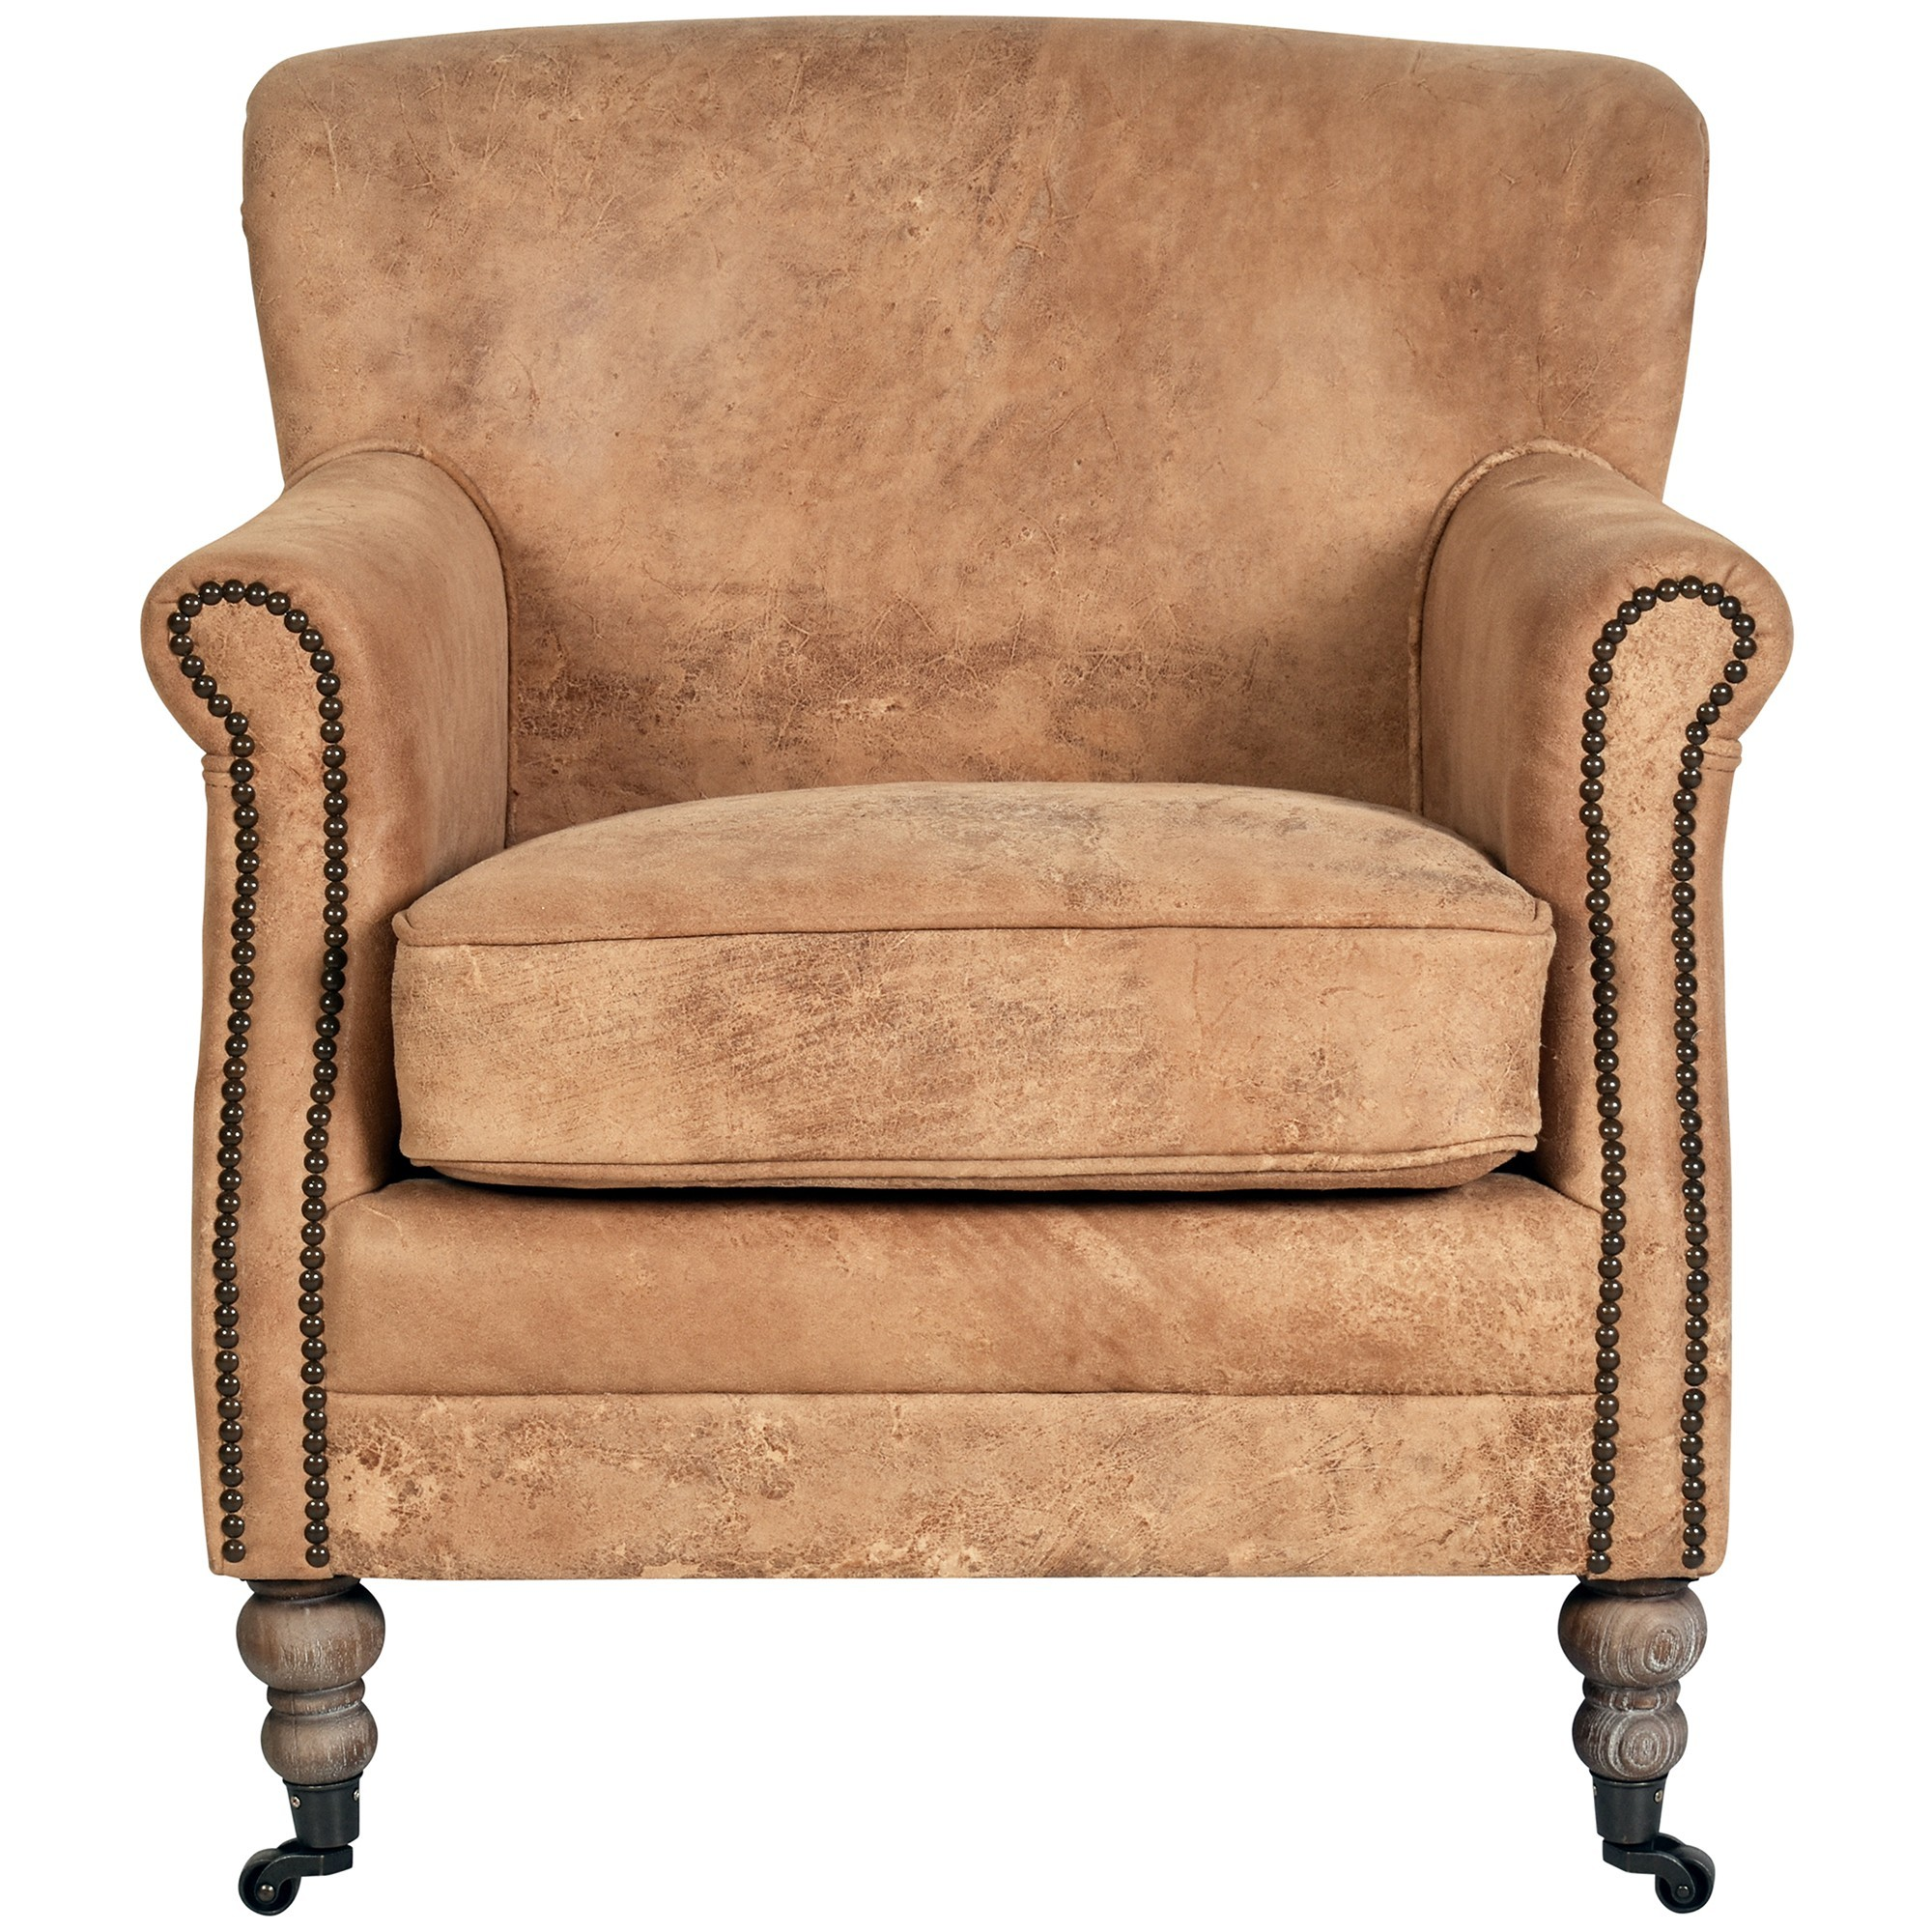 Bramley Vintage Leather Armchair, Caramel